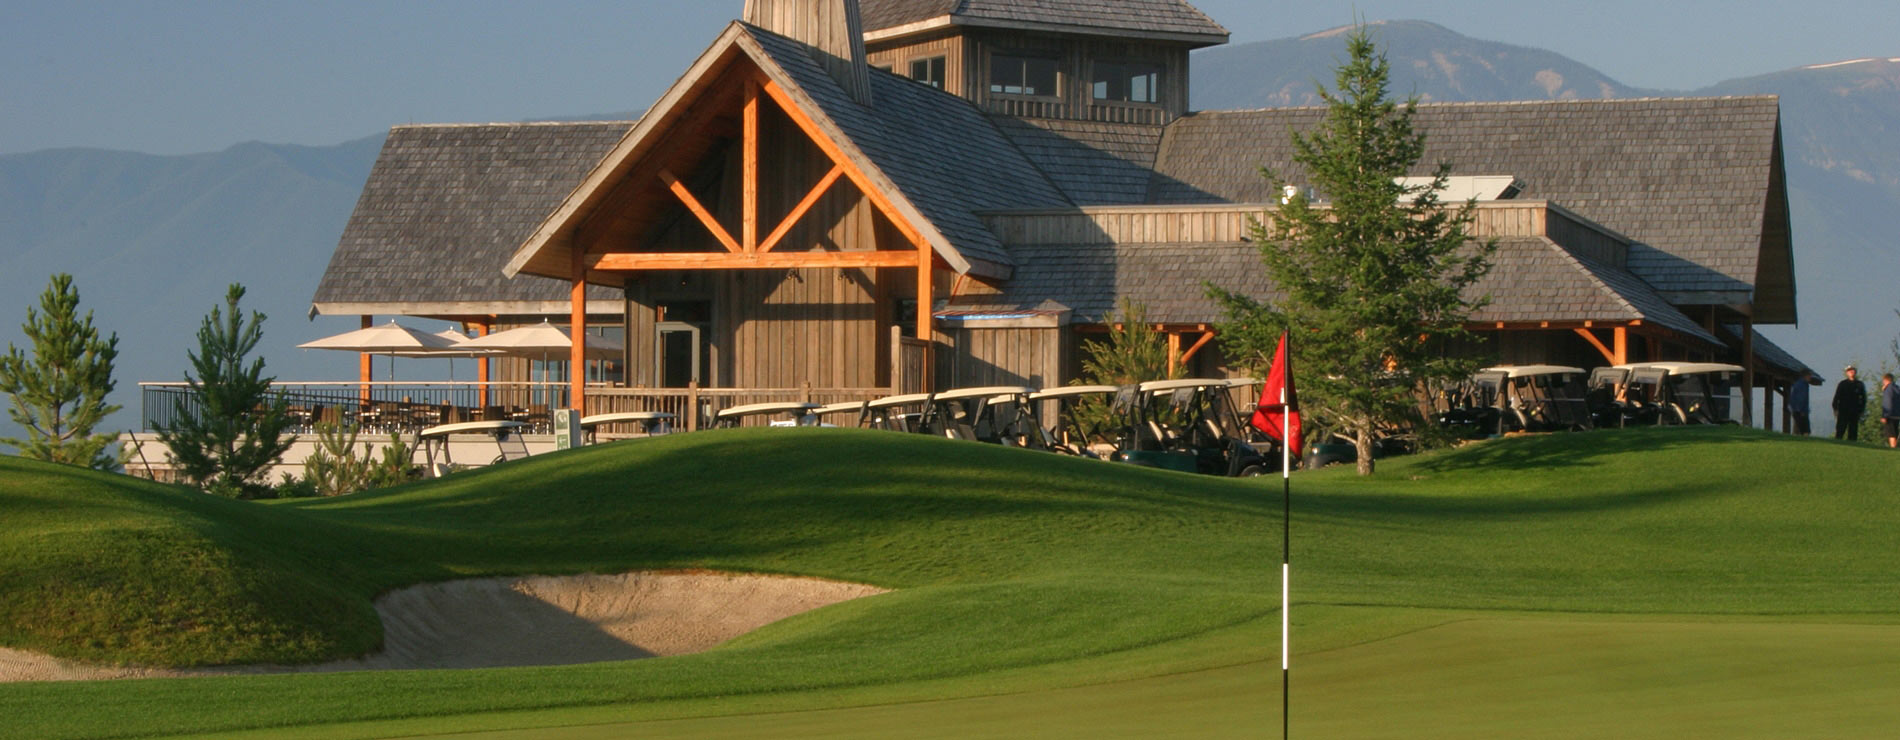 Eagle Ranch Resort Invermere Bc